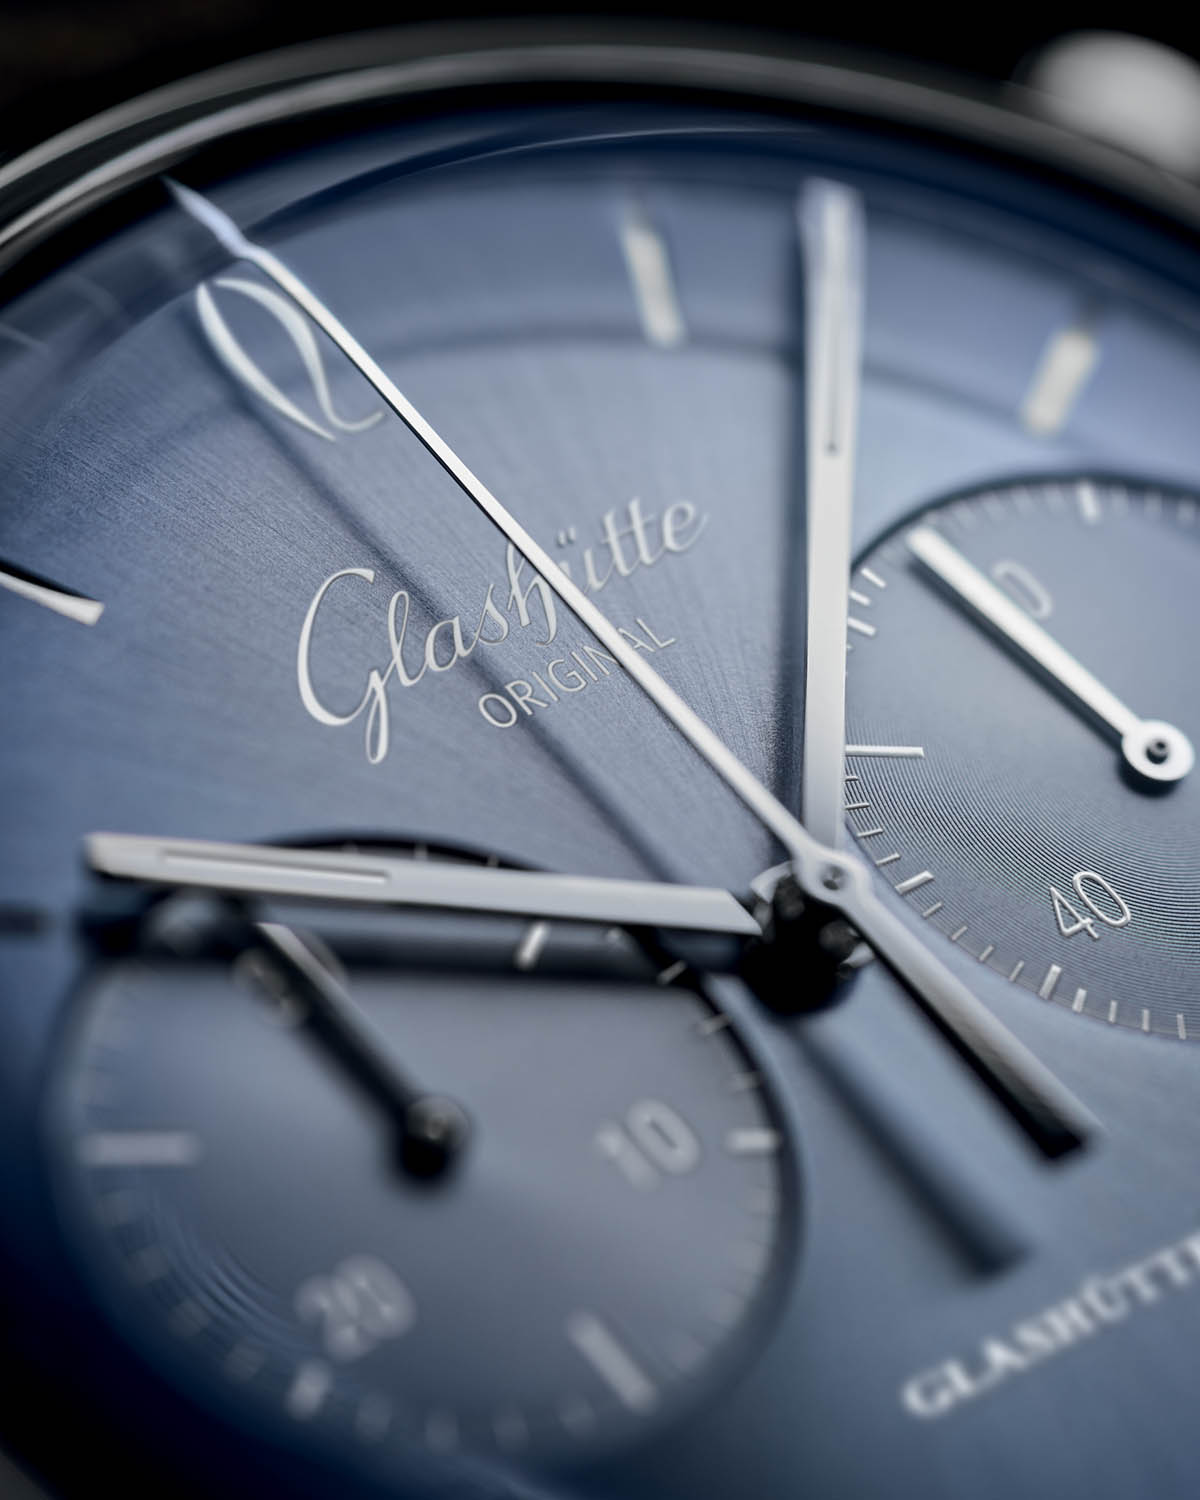 Glashutte-Original-Sixties-and-Sixities-Chronograph-Annual-Edition-2020-Glacier-Blue-1.jpg